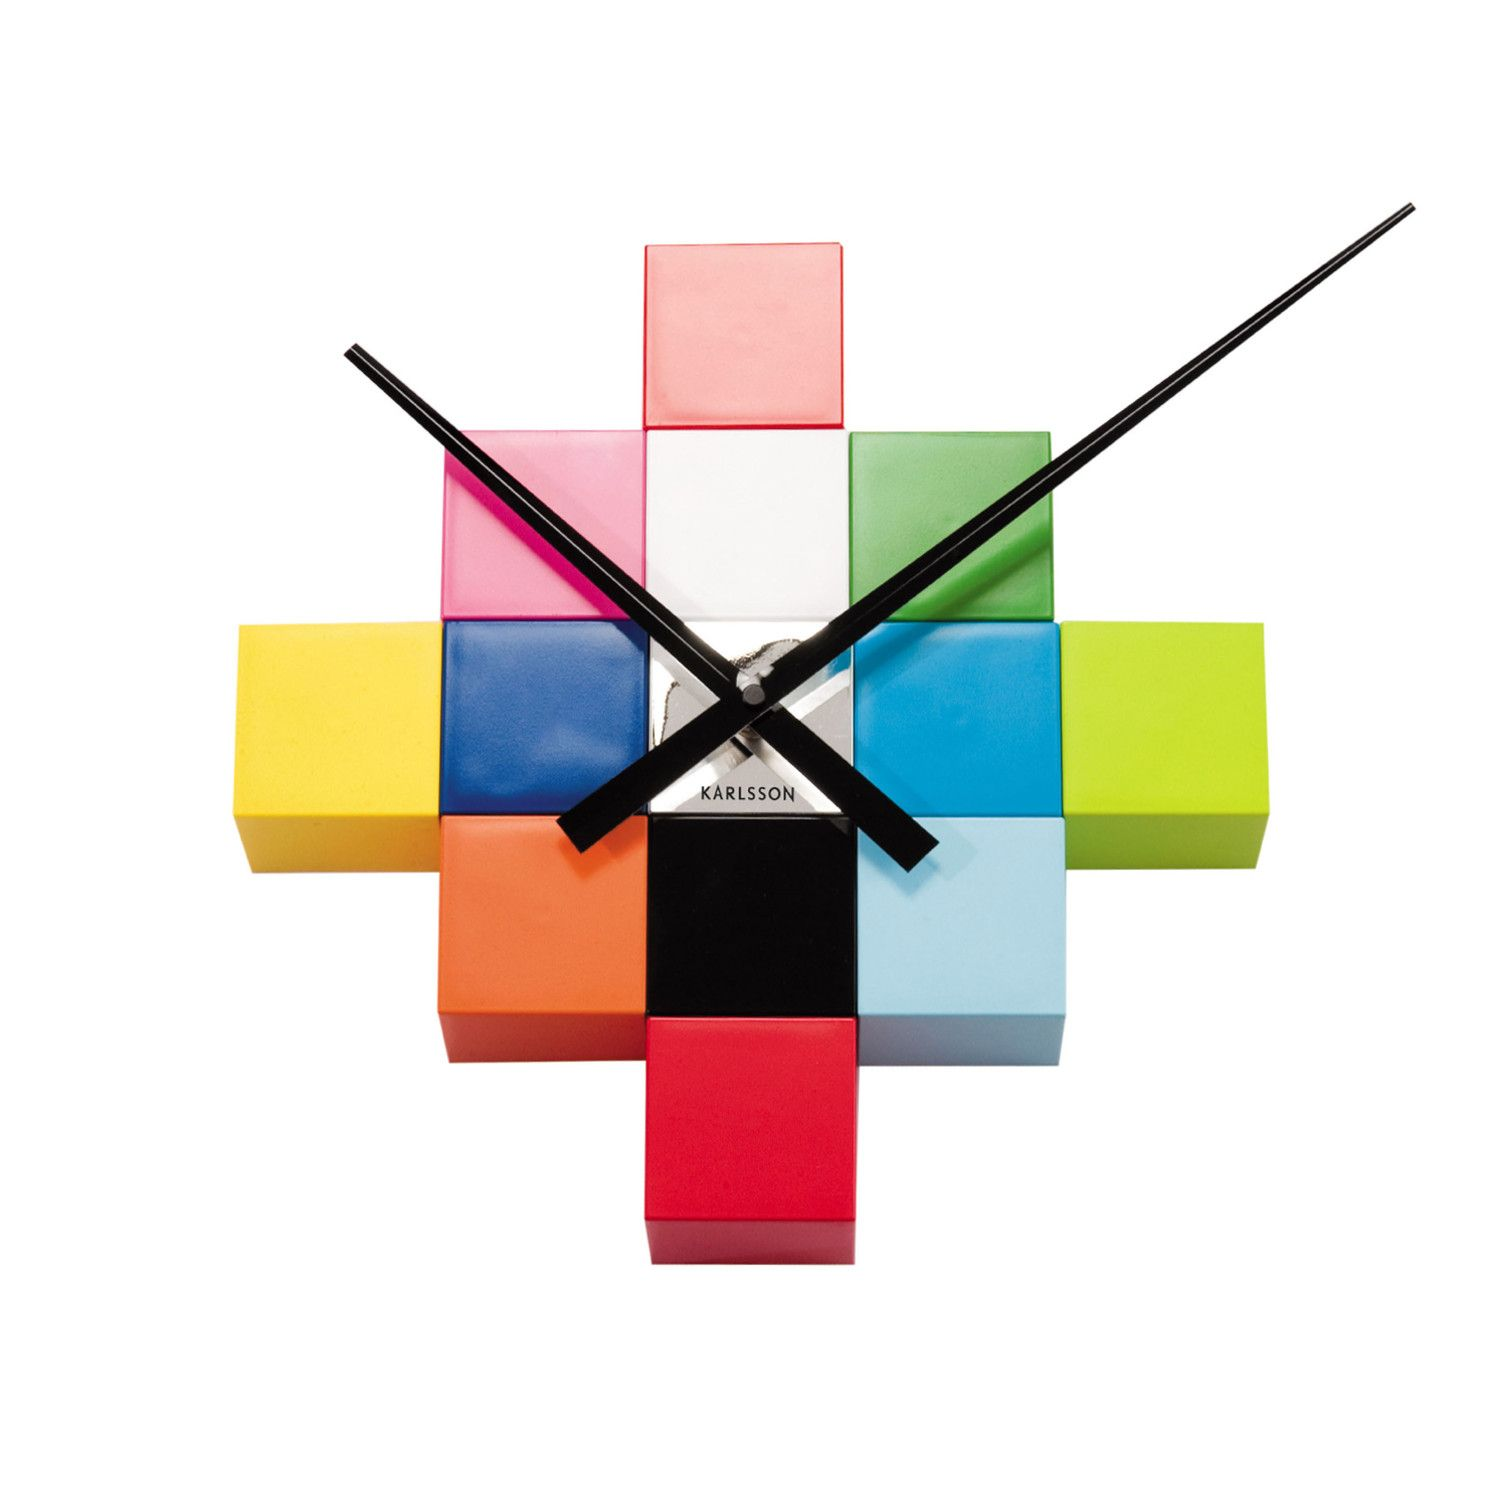 Cubic clock colours pinterest clocks wall clocks and walls buy karlsson diy cubic wall clock in multi colour from our clocks range at tesco direct we stock a great range of products at everyday prices amipublicfo Image collections